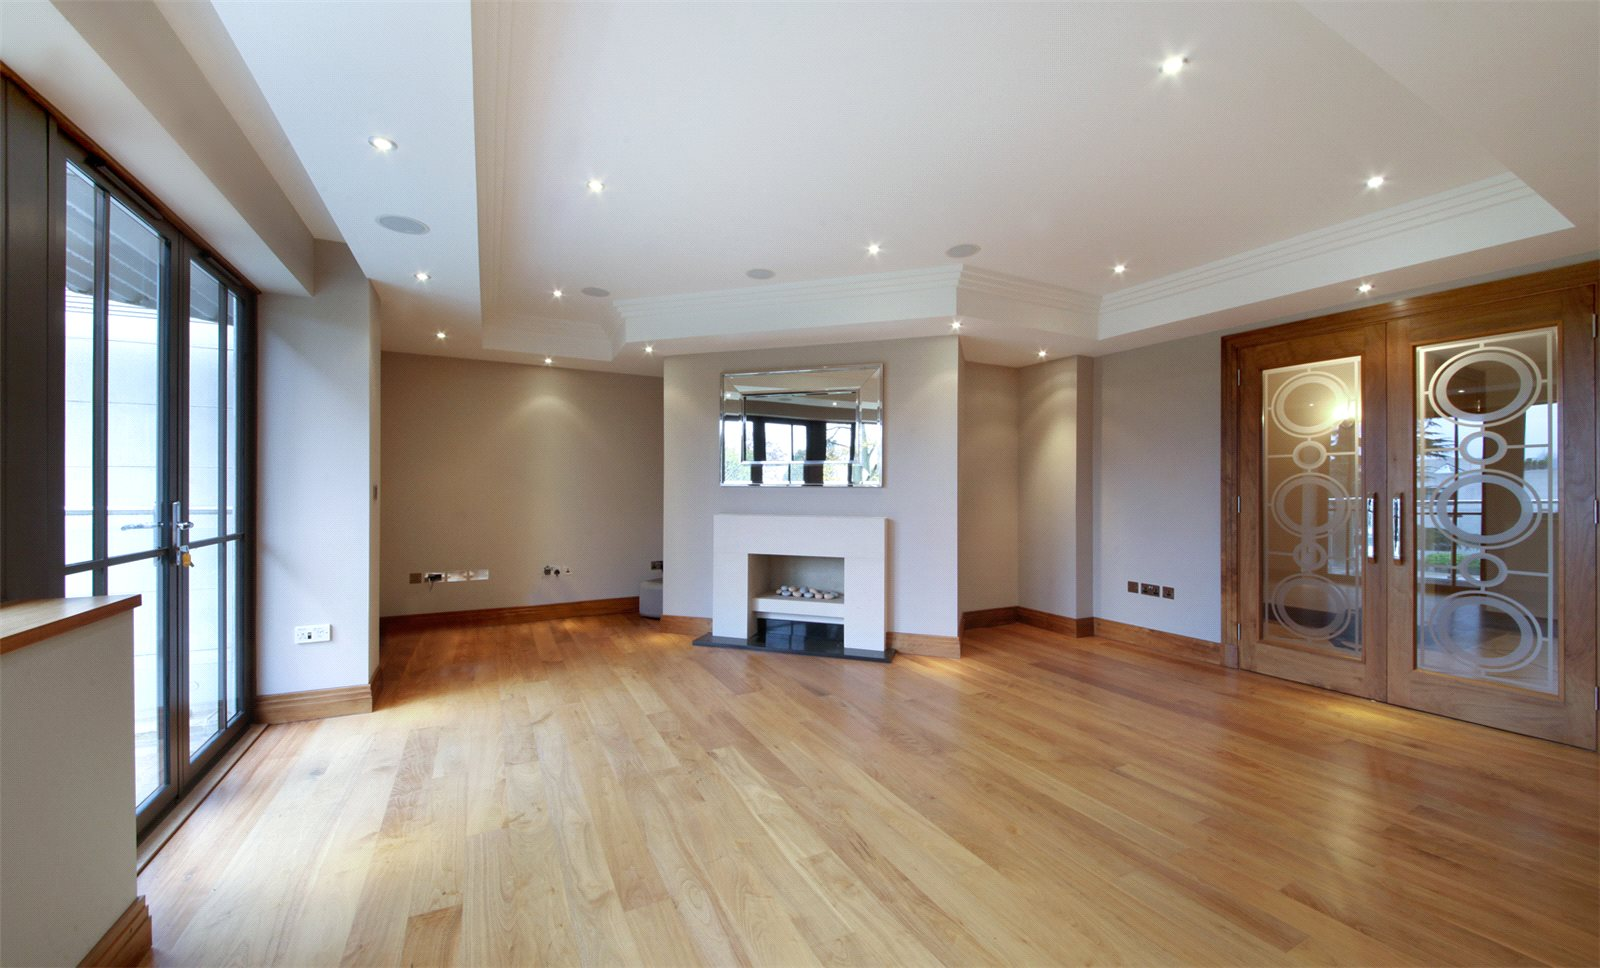 Additional photo for property listing at Charters Garden House, Charters, Charters Road, Ascot, Berkshire, SL5 Ascot, 英格蘭